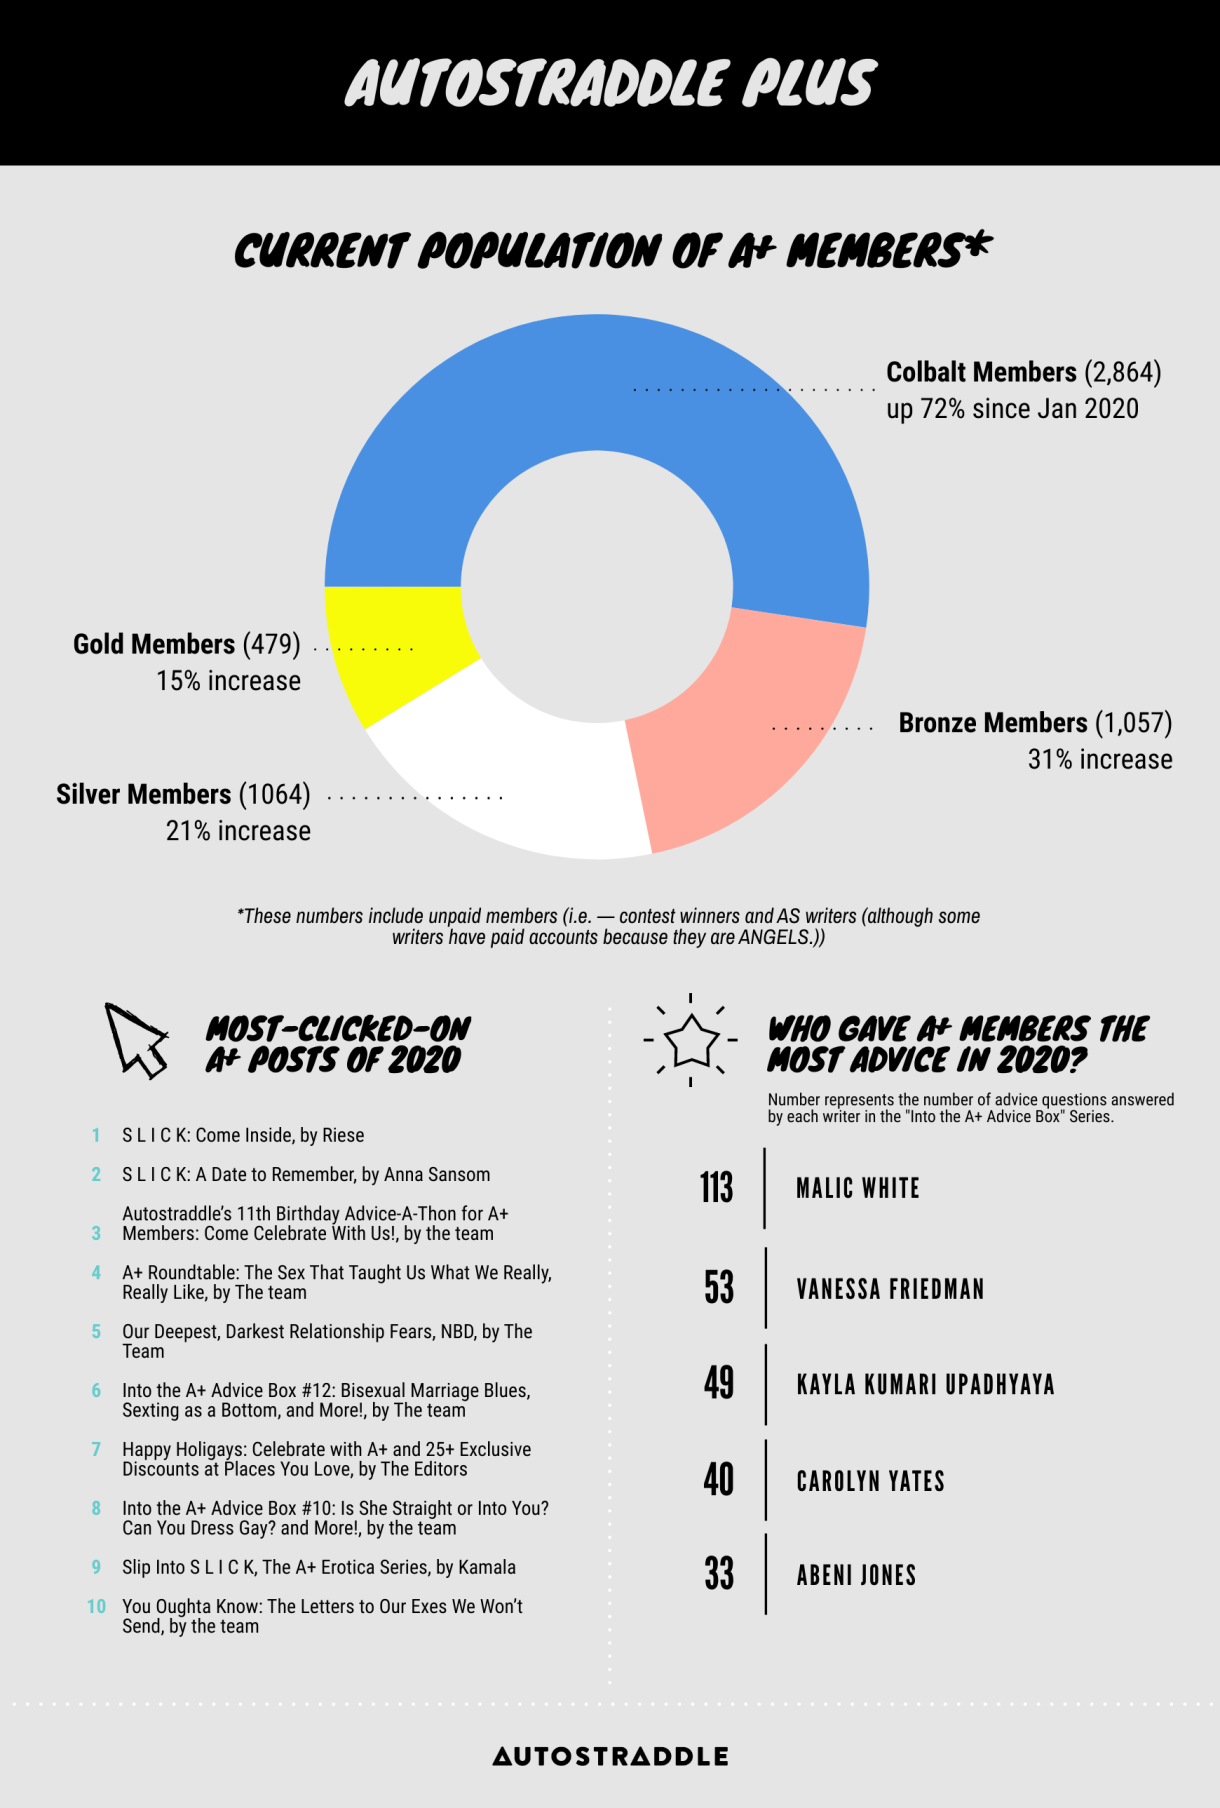 Autostraddle Plus Infographic // Current Population of A+ Members: Cobalt (2,684), Bronze (1,057), Silver (1064), Gold (479). // Who Gave A+ Members the Most Advice in 2020? 1. Malic - 113 questions, 2. Vanessa - 53 questions, 4. Kayla - 49 questions, 5. Carolyn - 40 questions, 6. Abeni - 33 Questions. // Most Clicked-on A+ Posts of 2020: 1. S L I C K: Come Inside, by Riese, 2. S L I C K: A Date To Remember, by Anna Sansom, 3. Autostraddle's Birthday Advice-a-Thon, 4. A+ Roundtable: Sex That Taught Us What We Really Liked, 5. A+ Roundtable: Our Deepest Darkest Relationship Fears, 6. Into the A+ Advice Box #12, 7. Happy Holigays: Celebrate with 25+ Exclusive Discounts to Places You Love, 8. Into the Advice Box #10, 9. Slip into S L I C K A+ Erotica Series, 10. You Oughta Know: The Letters to Our Exes We'll Never Send